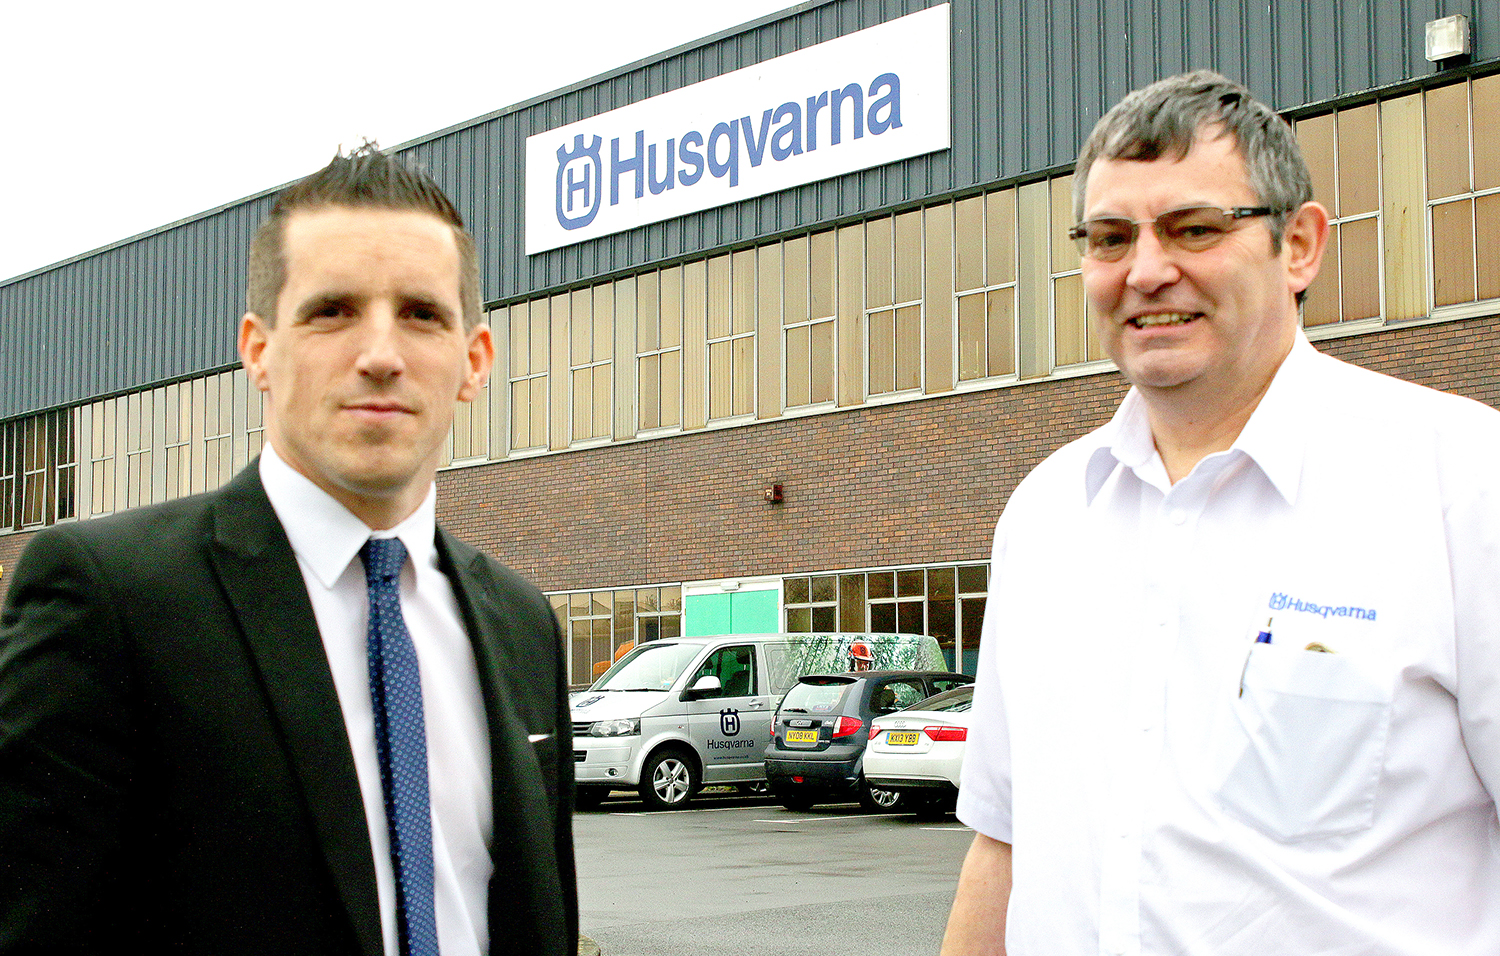 New Storage Facility for Husqvarna at Aycliffe